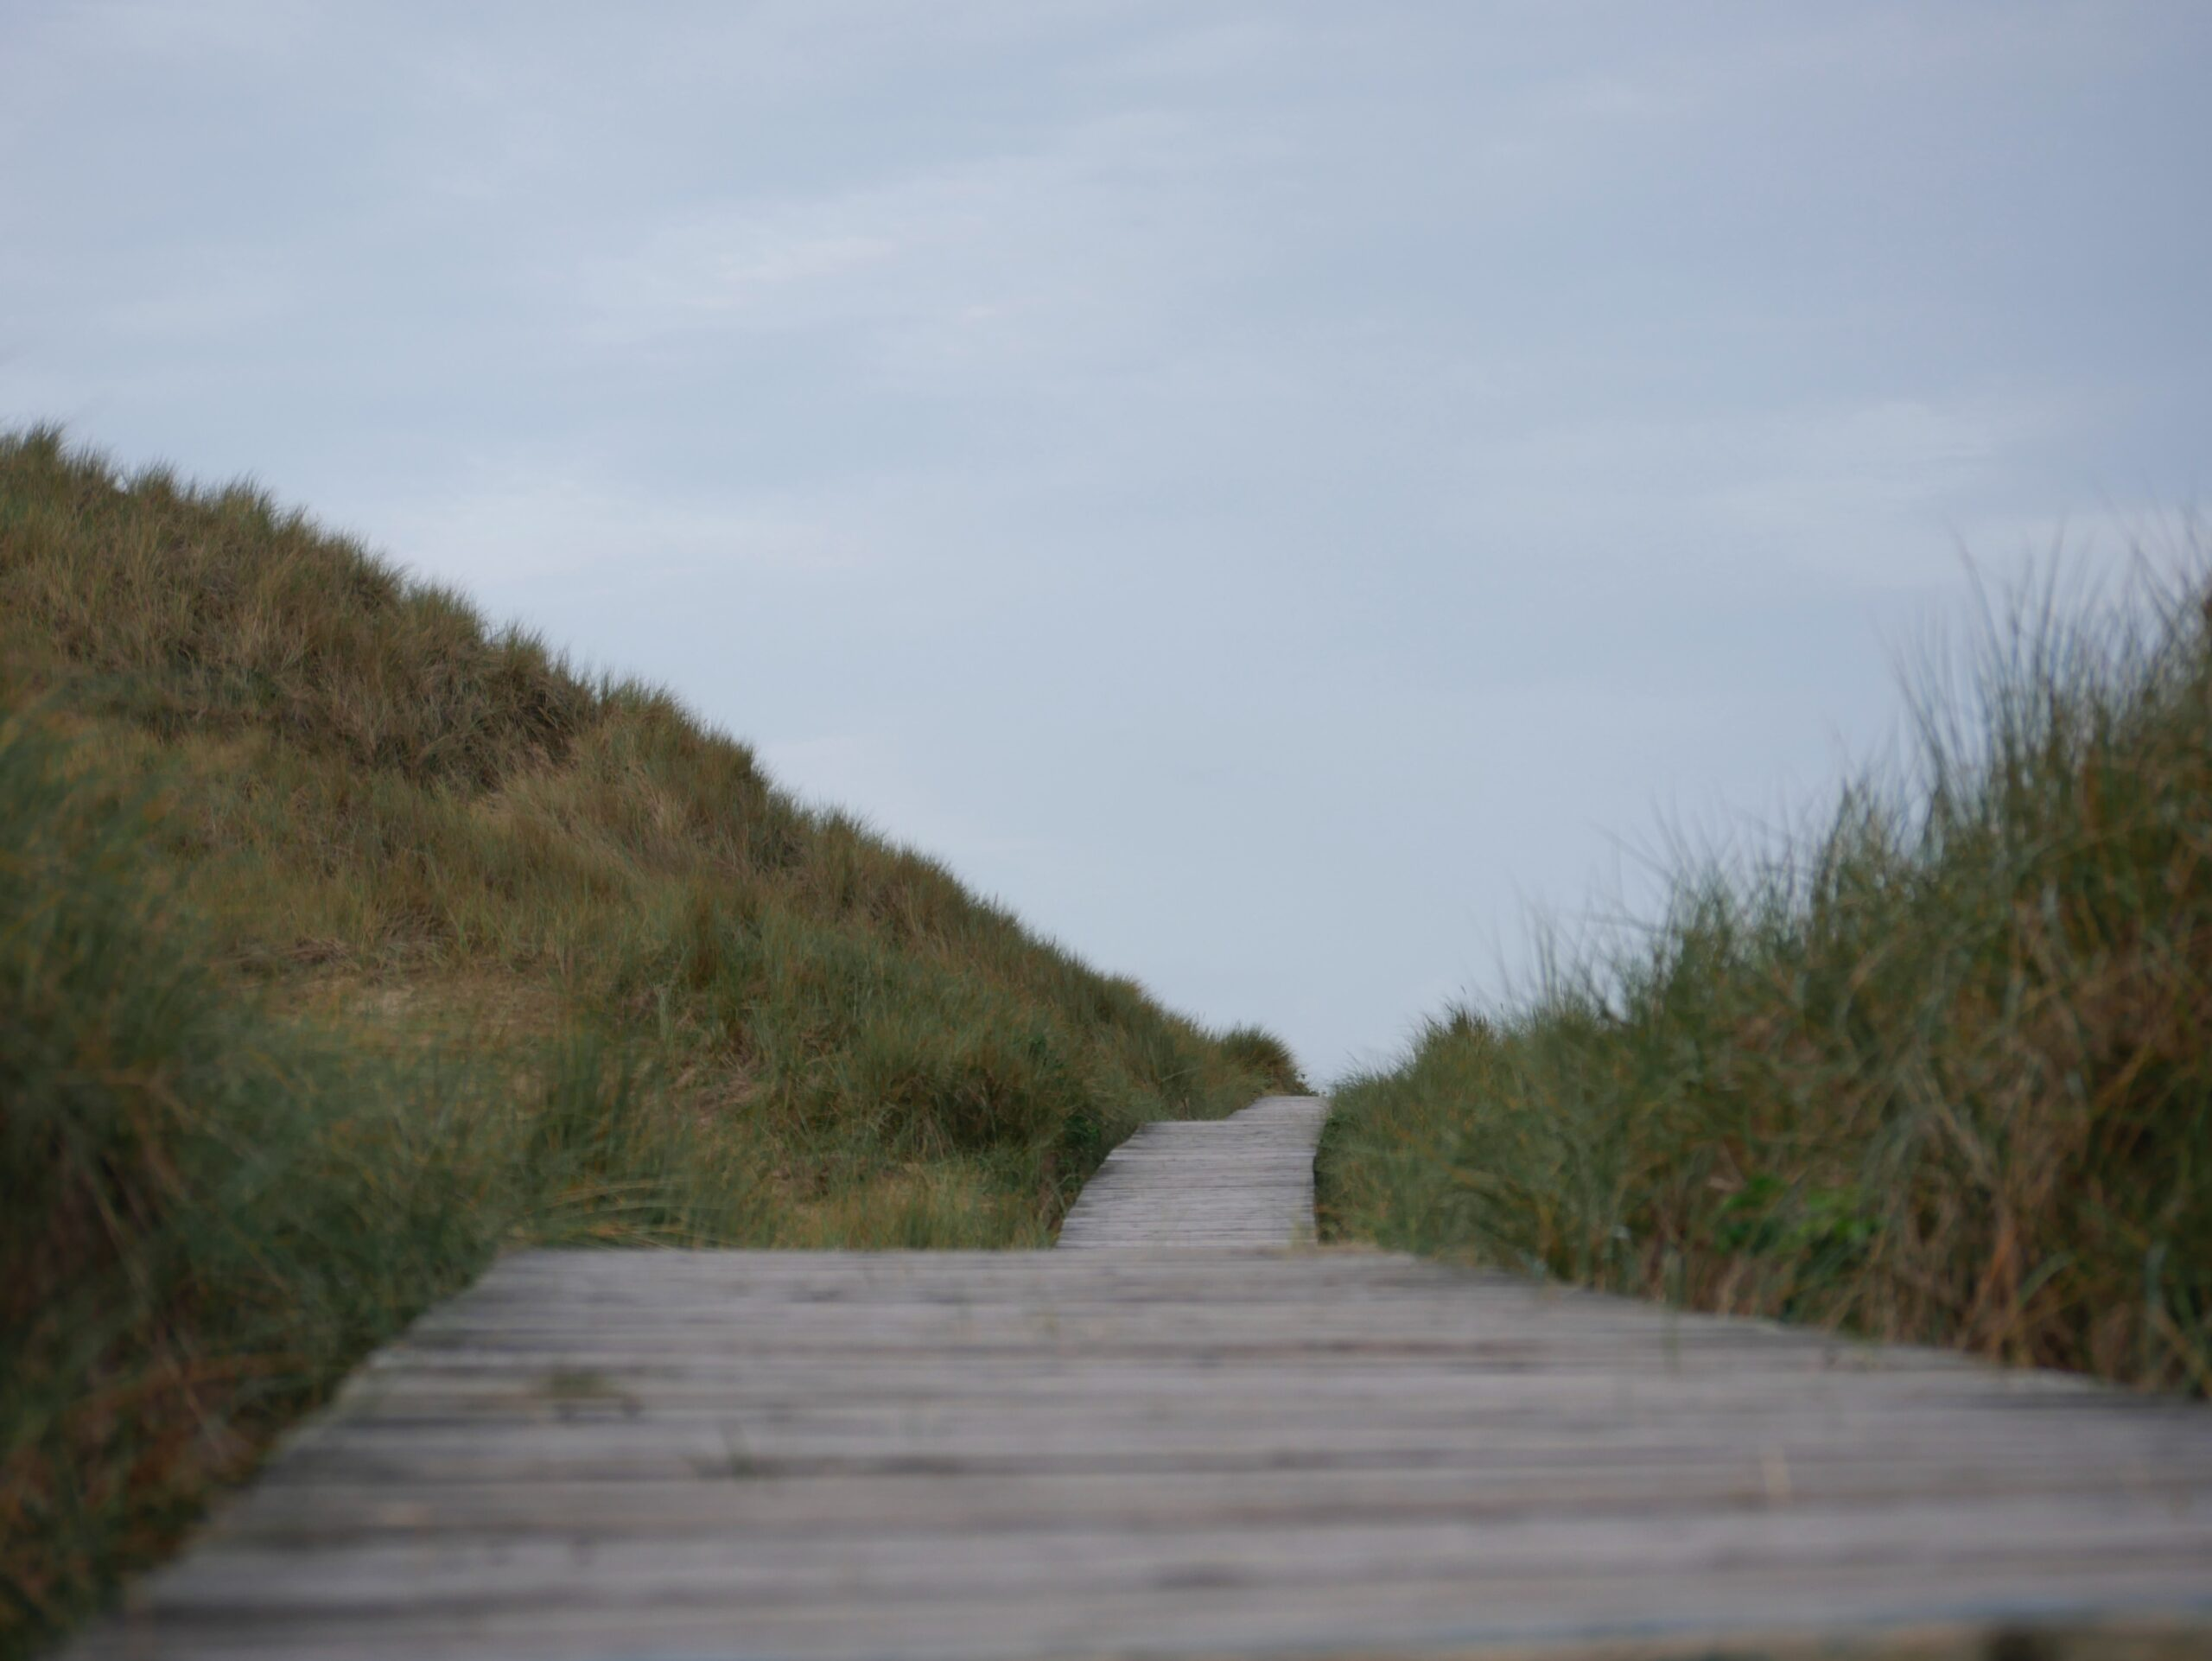 gray wooden pathway between green grass field under white sky during daytime